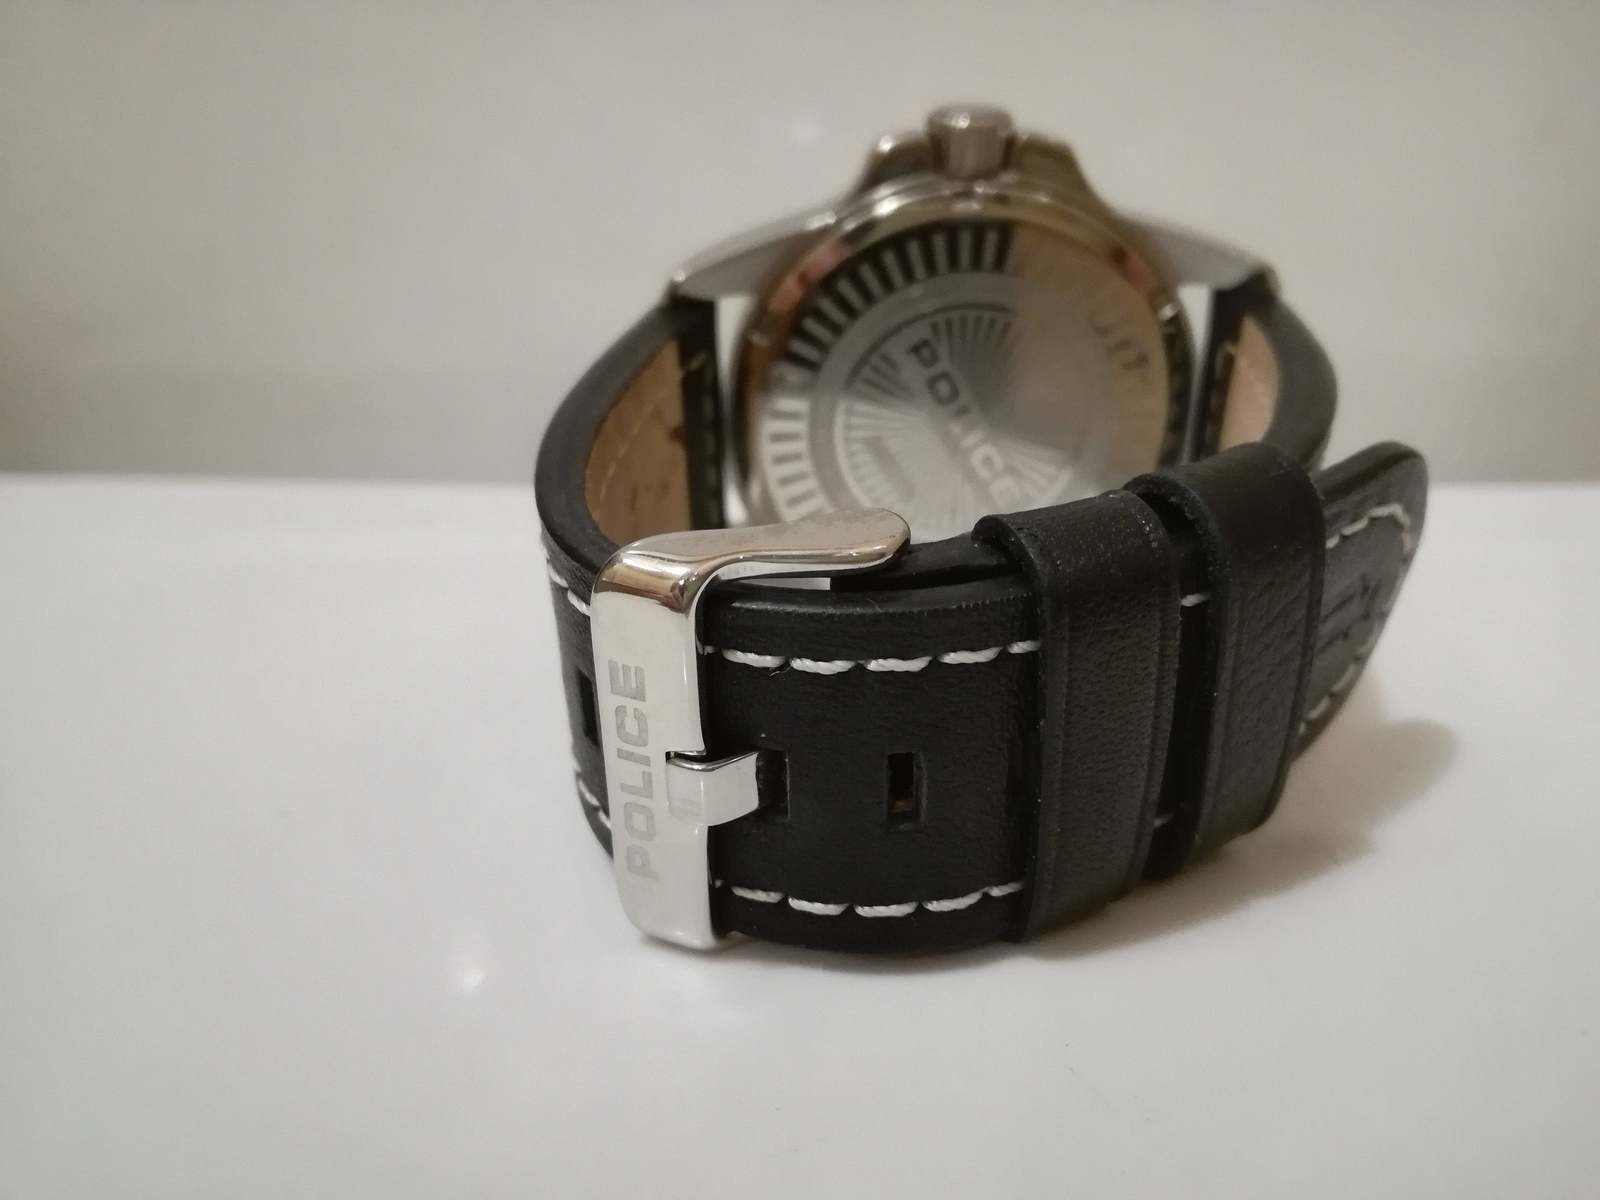 Gents watch /  Police watch / quart watch / metal watch / vintage  / watch image 5